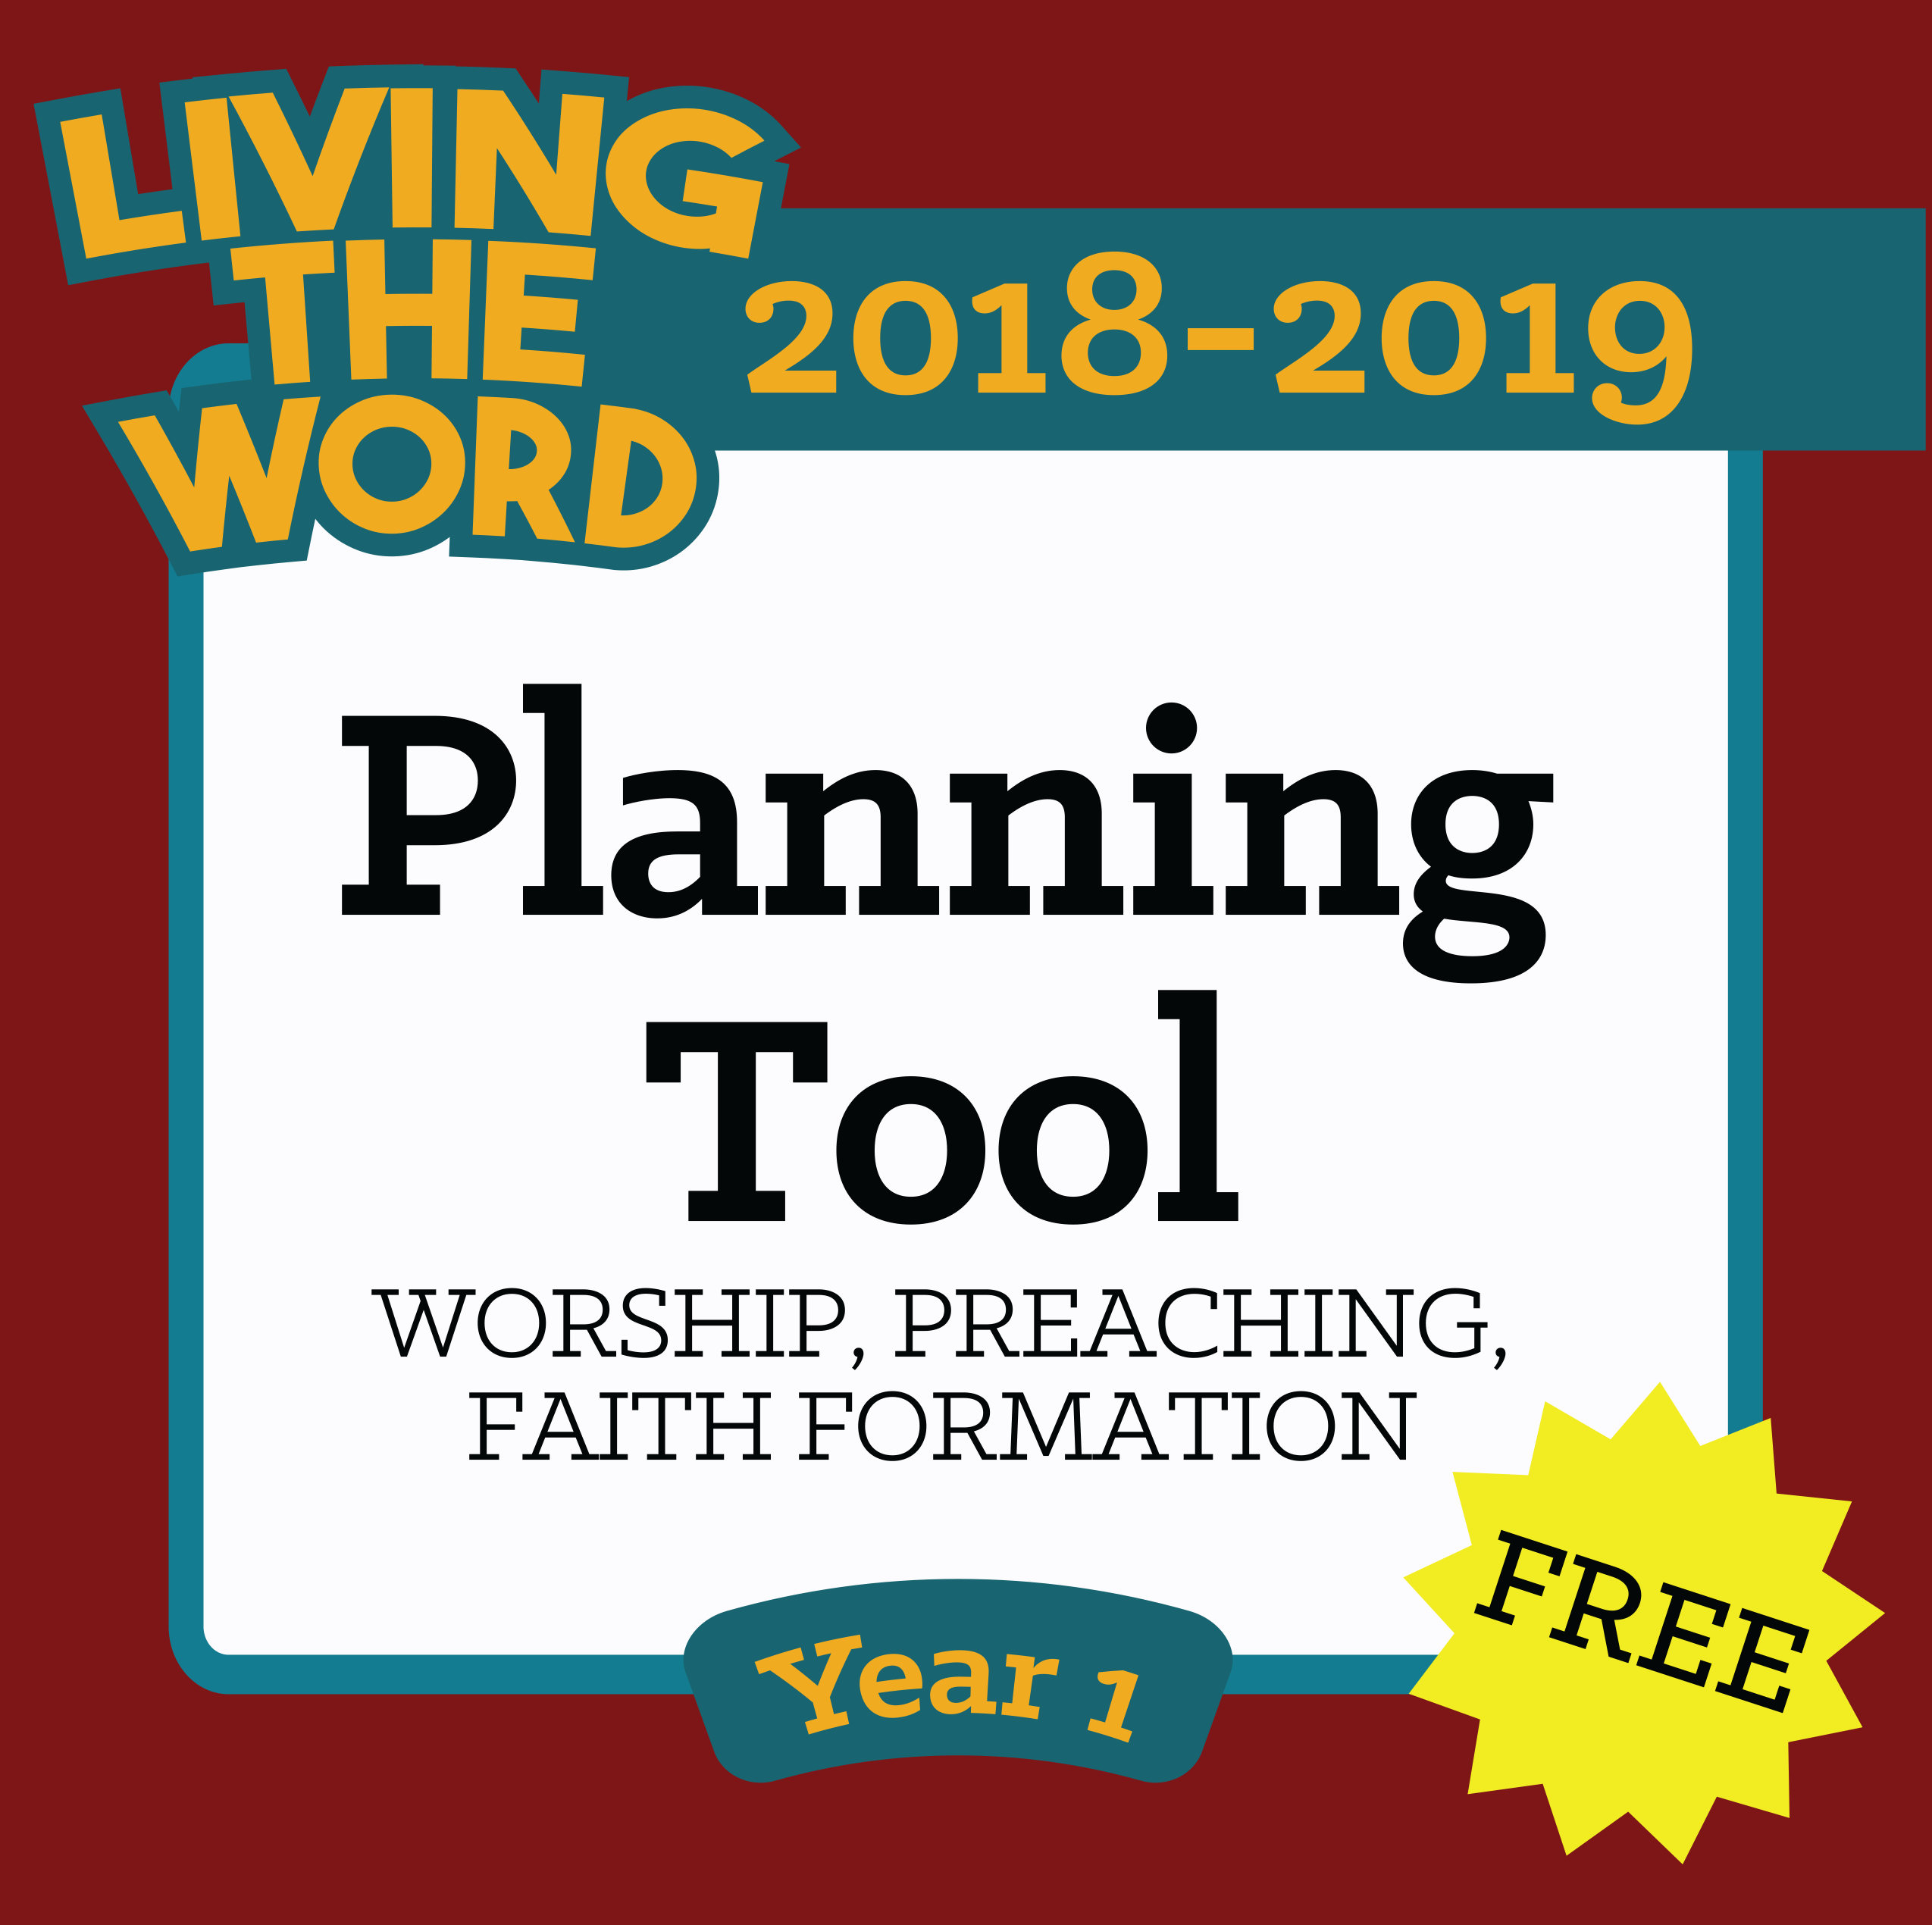 Ltw free planning tool year 1 spirit truth publishing for Planning tool free